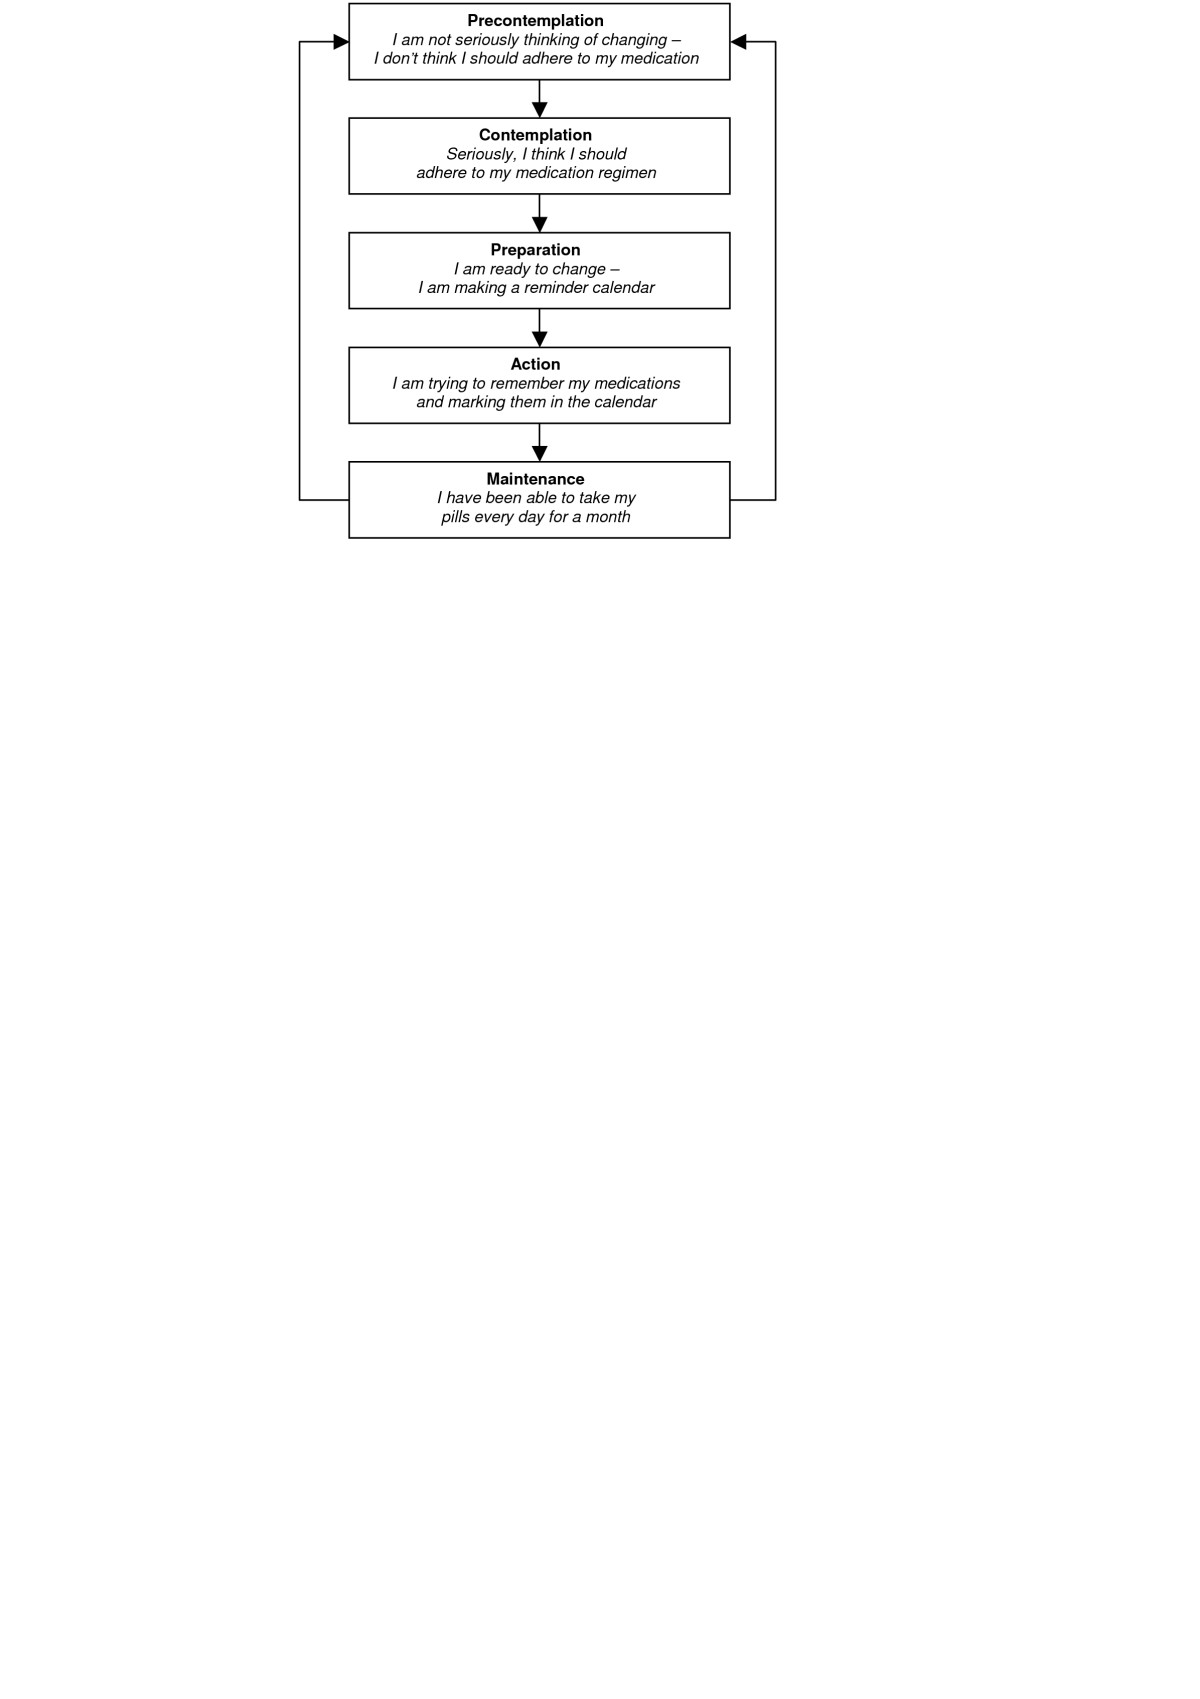 http://static-content.springer.com/image/art%3A10.1186%2F1471-2458-7-104/MediaObjects/12889_2006_Article_715_Fig10_HTML.jpg